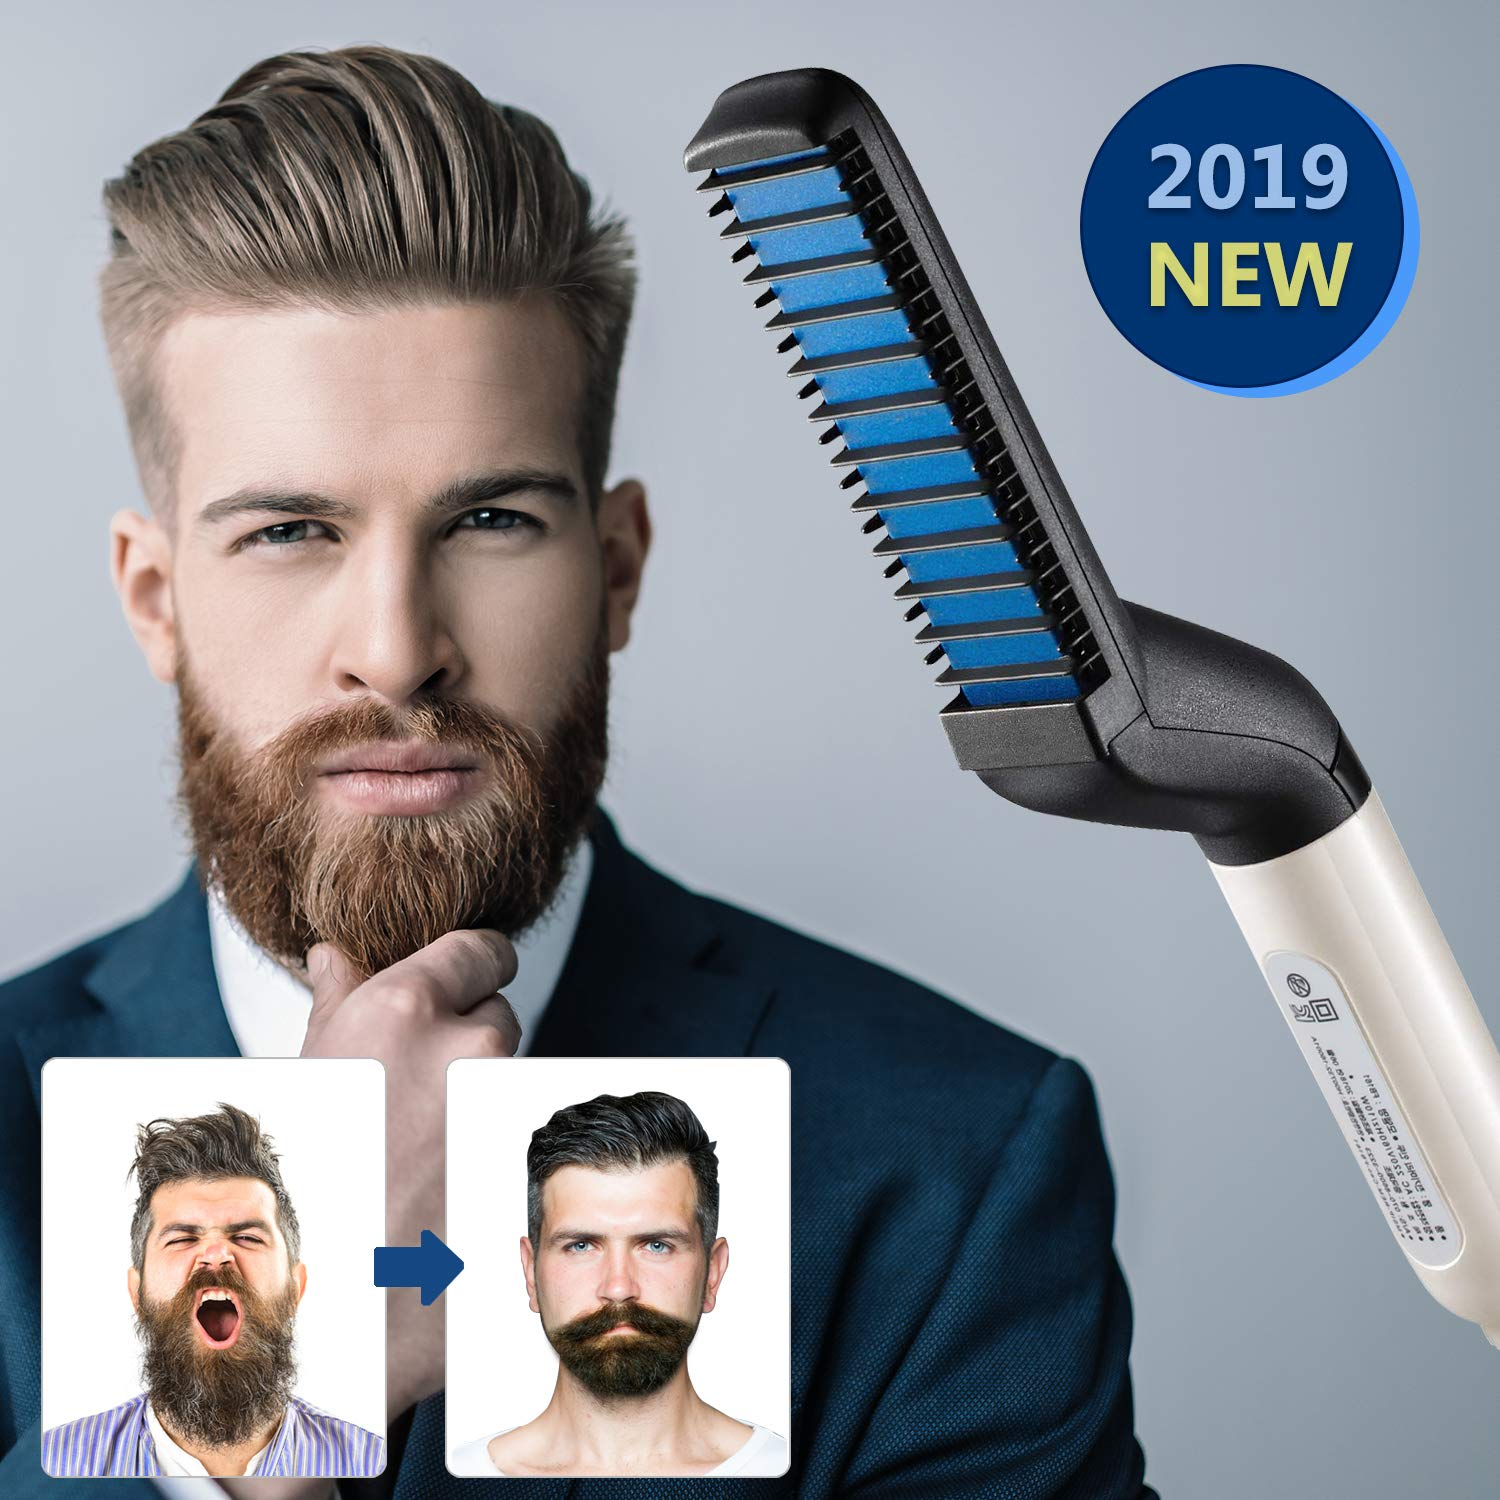 New Multi functional Hair Curling Curler Show Cap Tool Styling Accessories Men Quick Hair & Beard Straightener Styler Comb